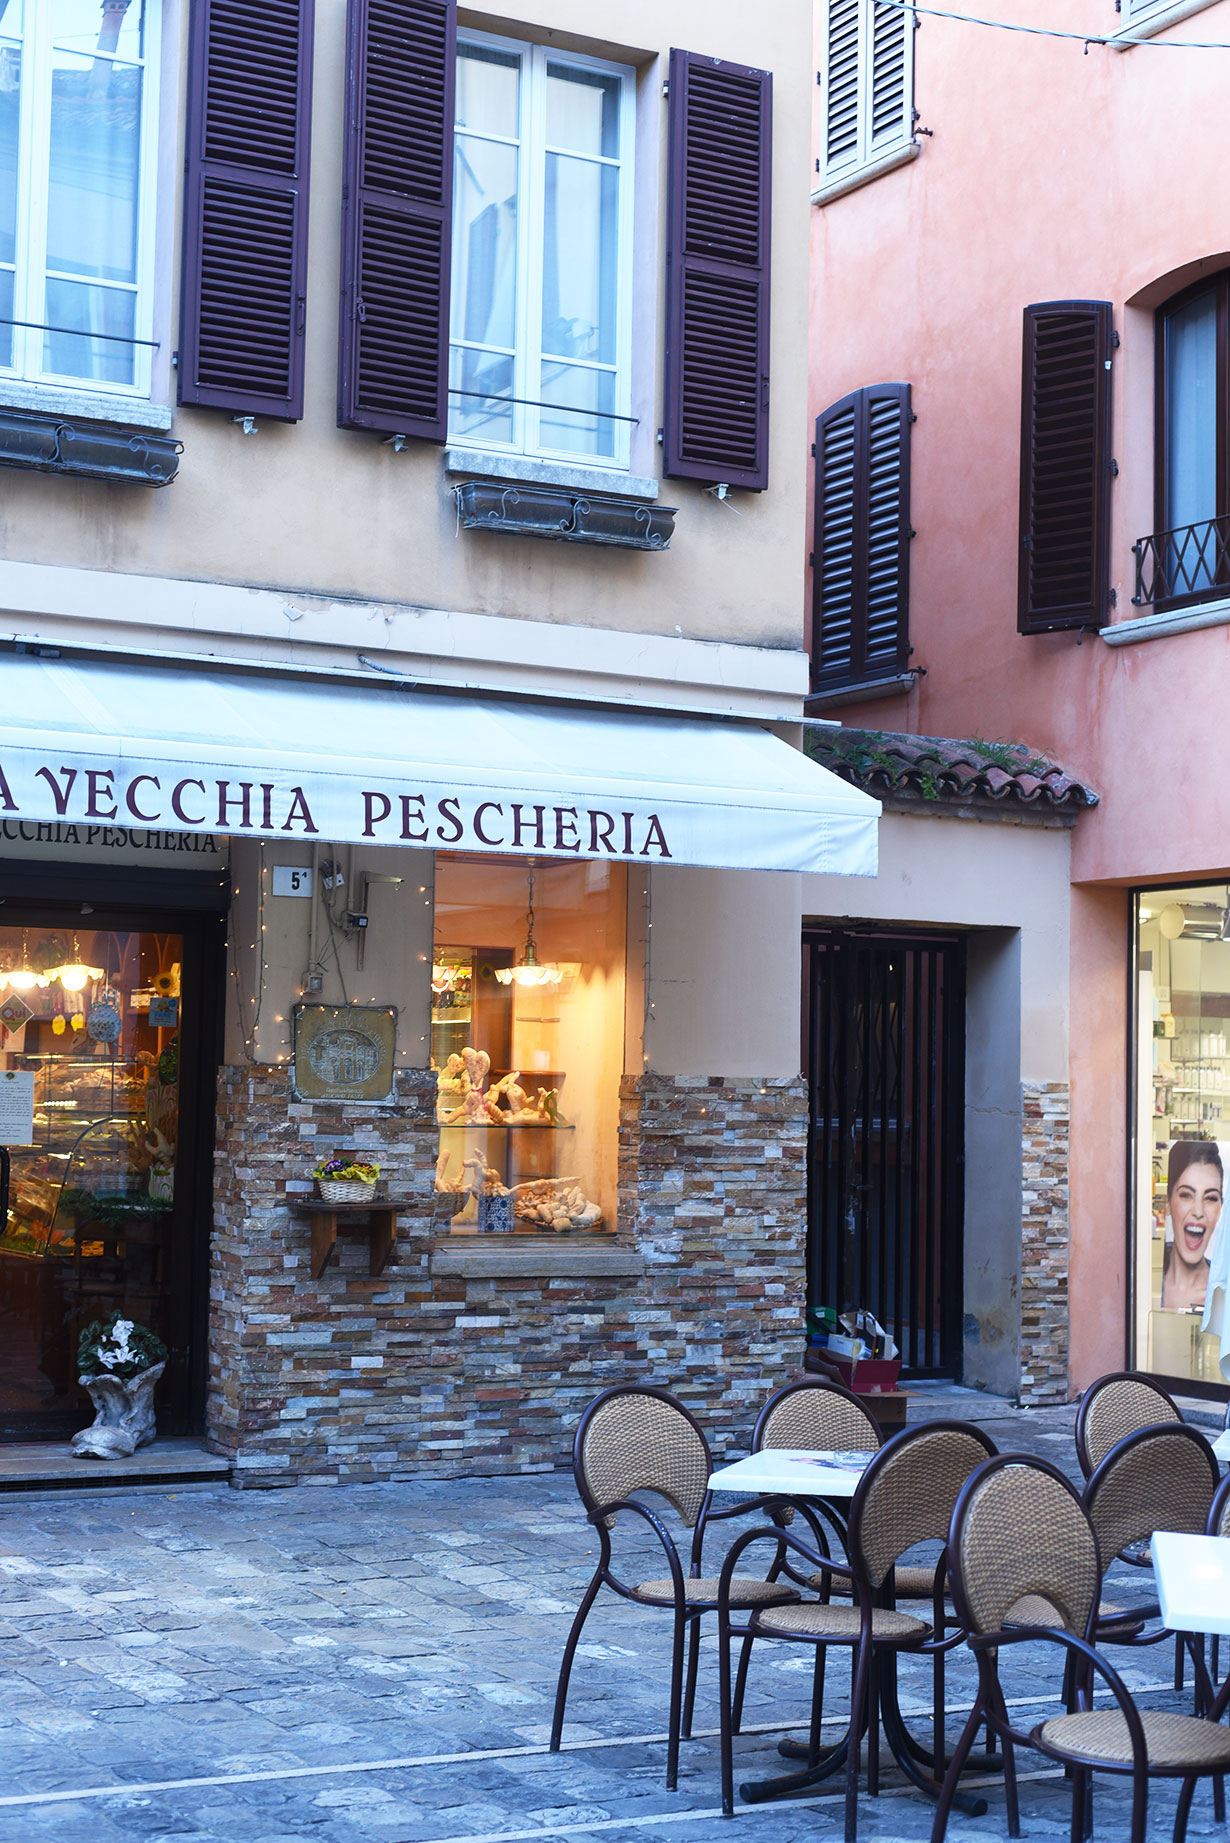 Pescheria in Rimini, Italy